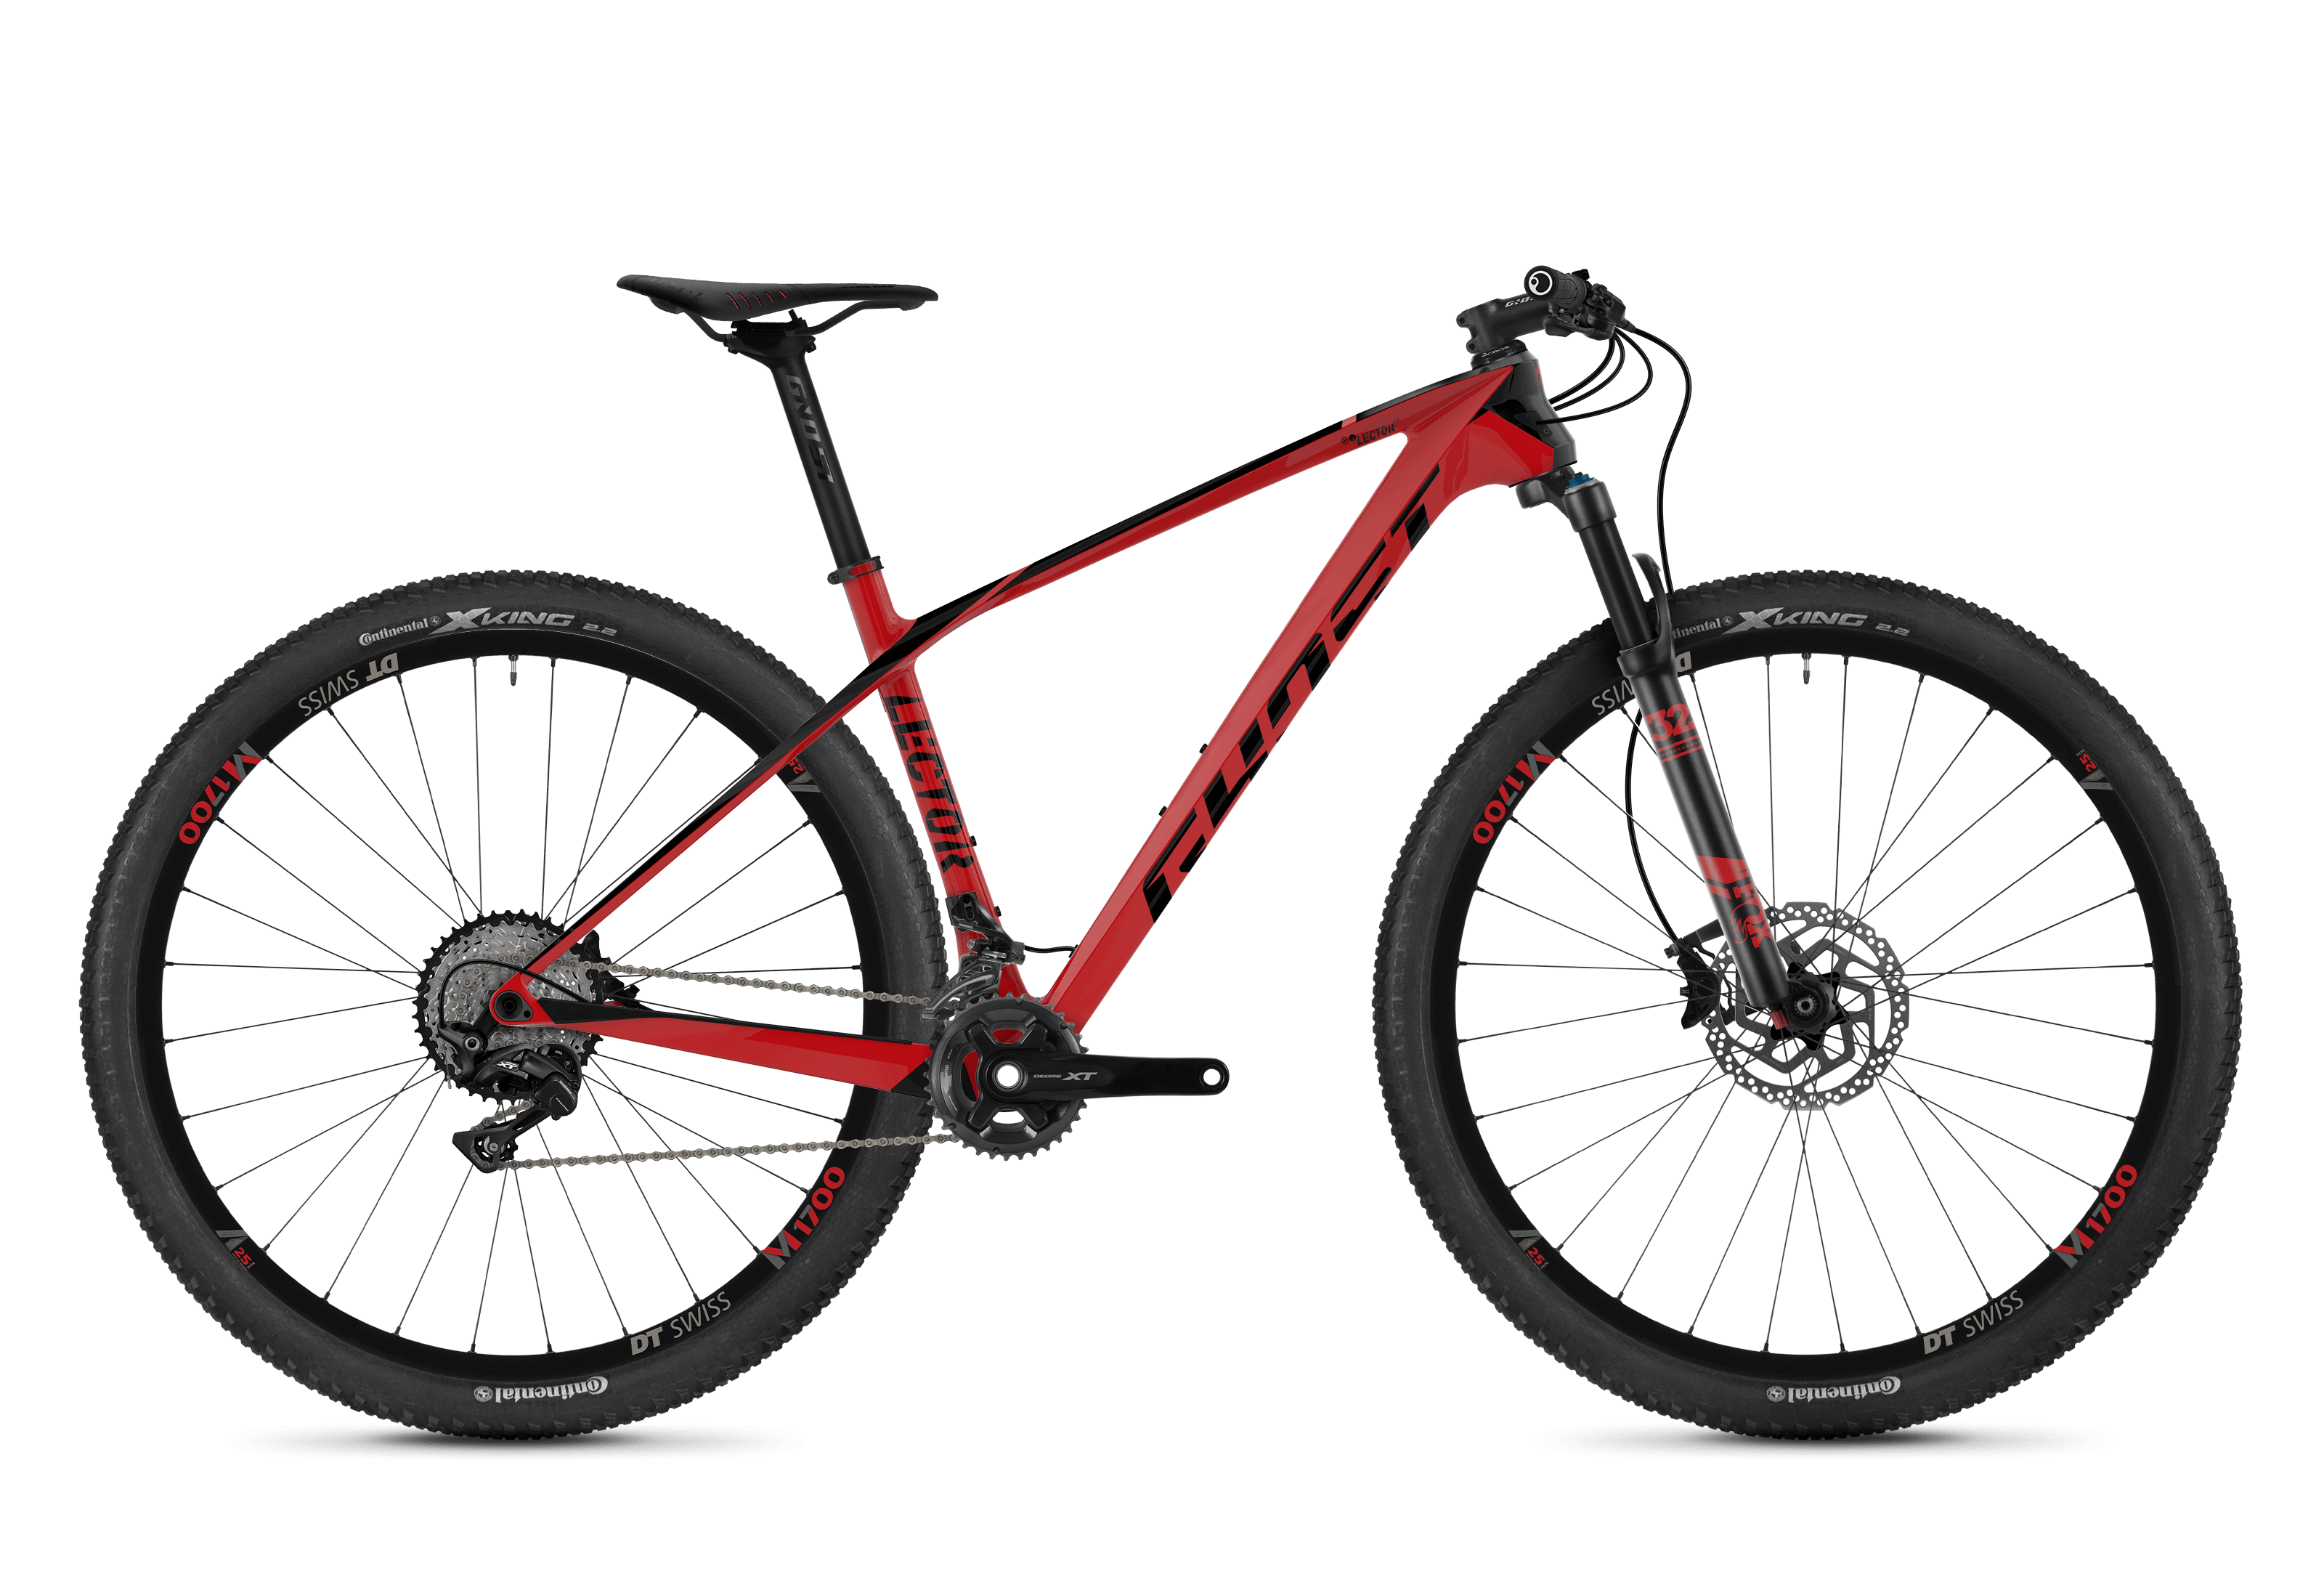 Horské kolo GHOST Lector 6.9 LC red / black XL 2018